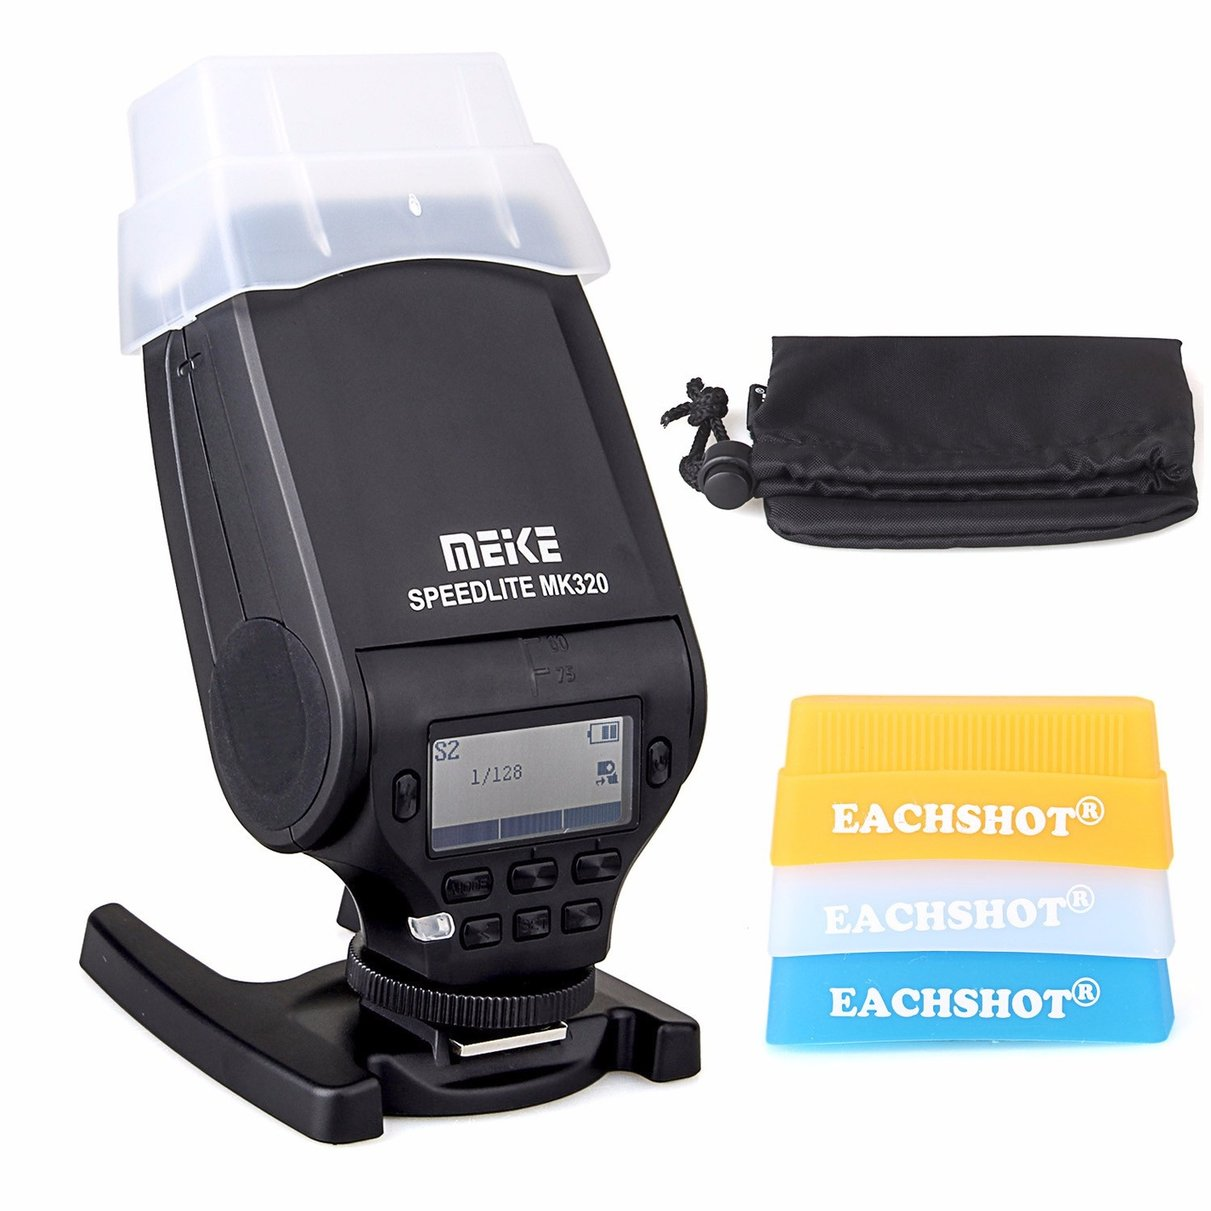 MEIKE MK-320 MK320 TTL flash Speedlite for Sony A7 A7 II A7S A7R A6000 A5000 NEX-7 NEX-6 NEX-5R NEX-5T NEX-3 mini flash light meike mk320 mk 320 mk320 c gn32 ettl speedlite for can 60d 7d 6d 70d dslr